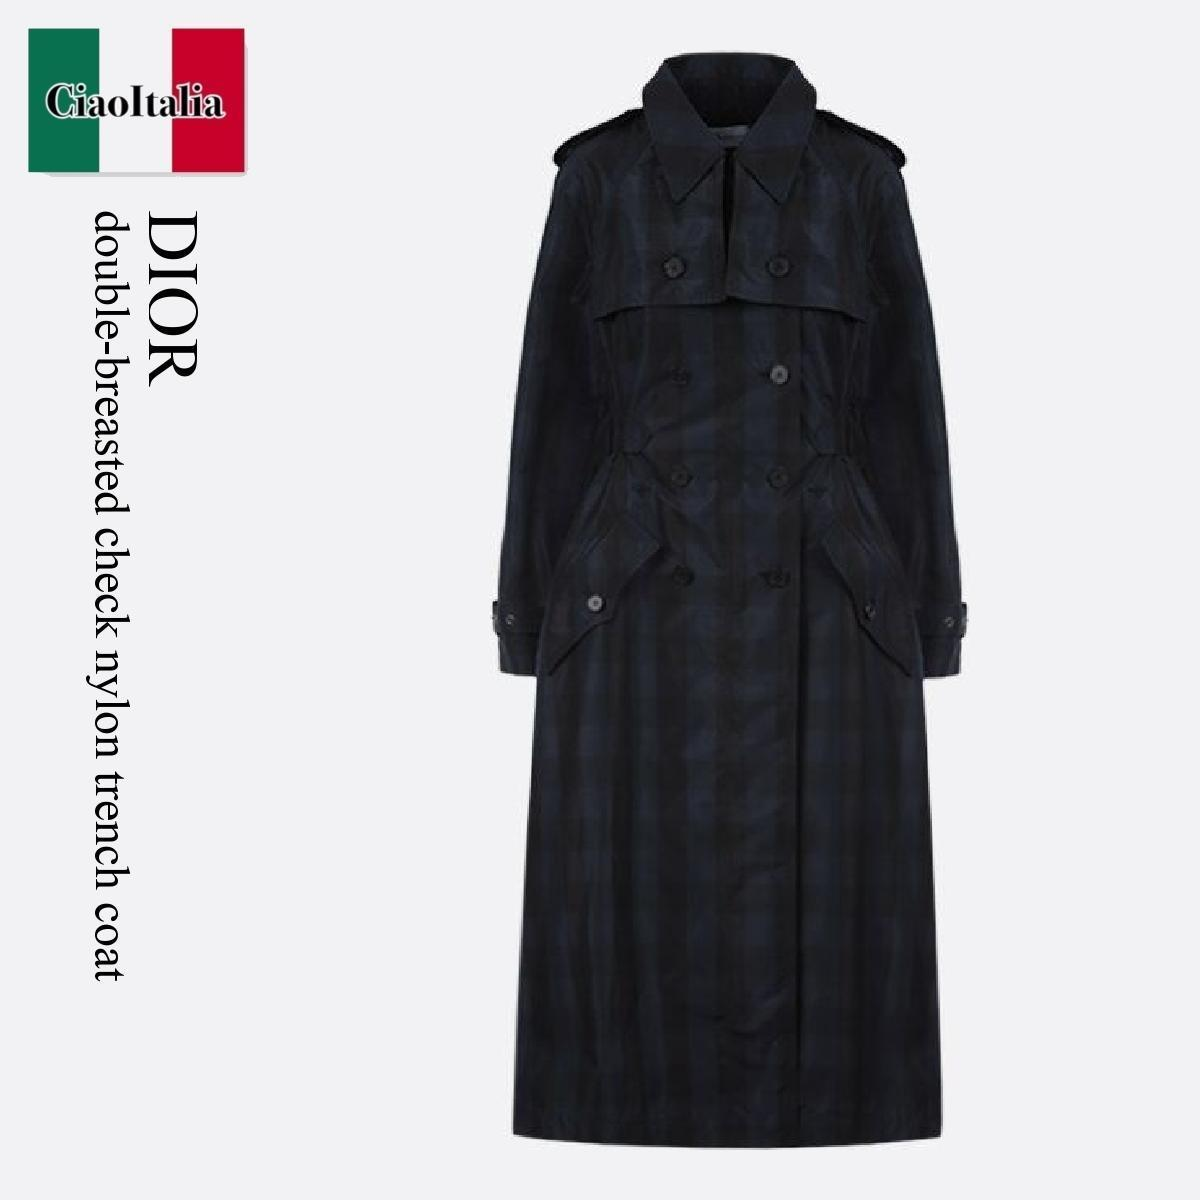 Dior double-breasted check nylon trench coat (Dior/トレンチコート) DOUBLE-BREASTED CHECK NYLON TRENCH COAT  047M55A28545  047M55A28545 871